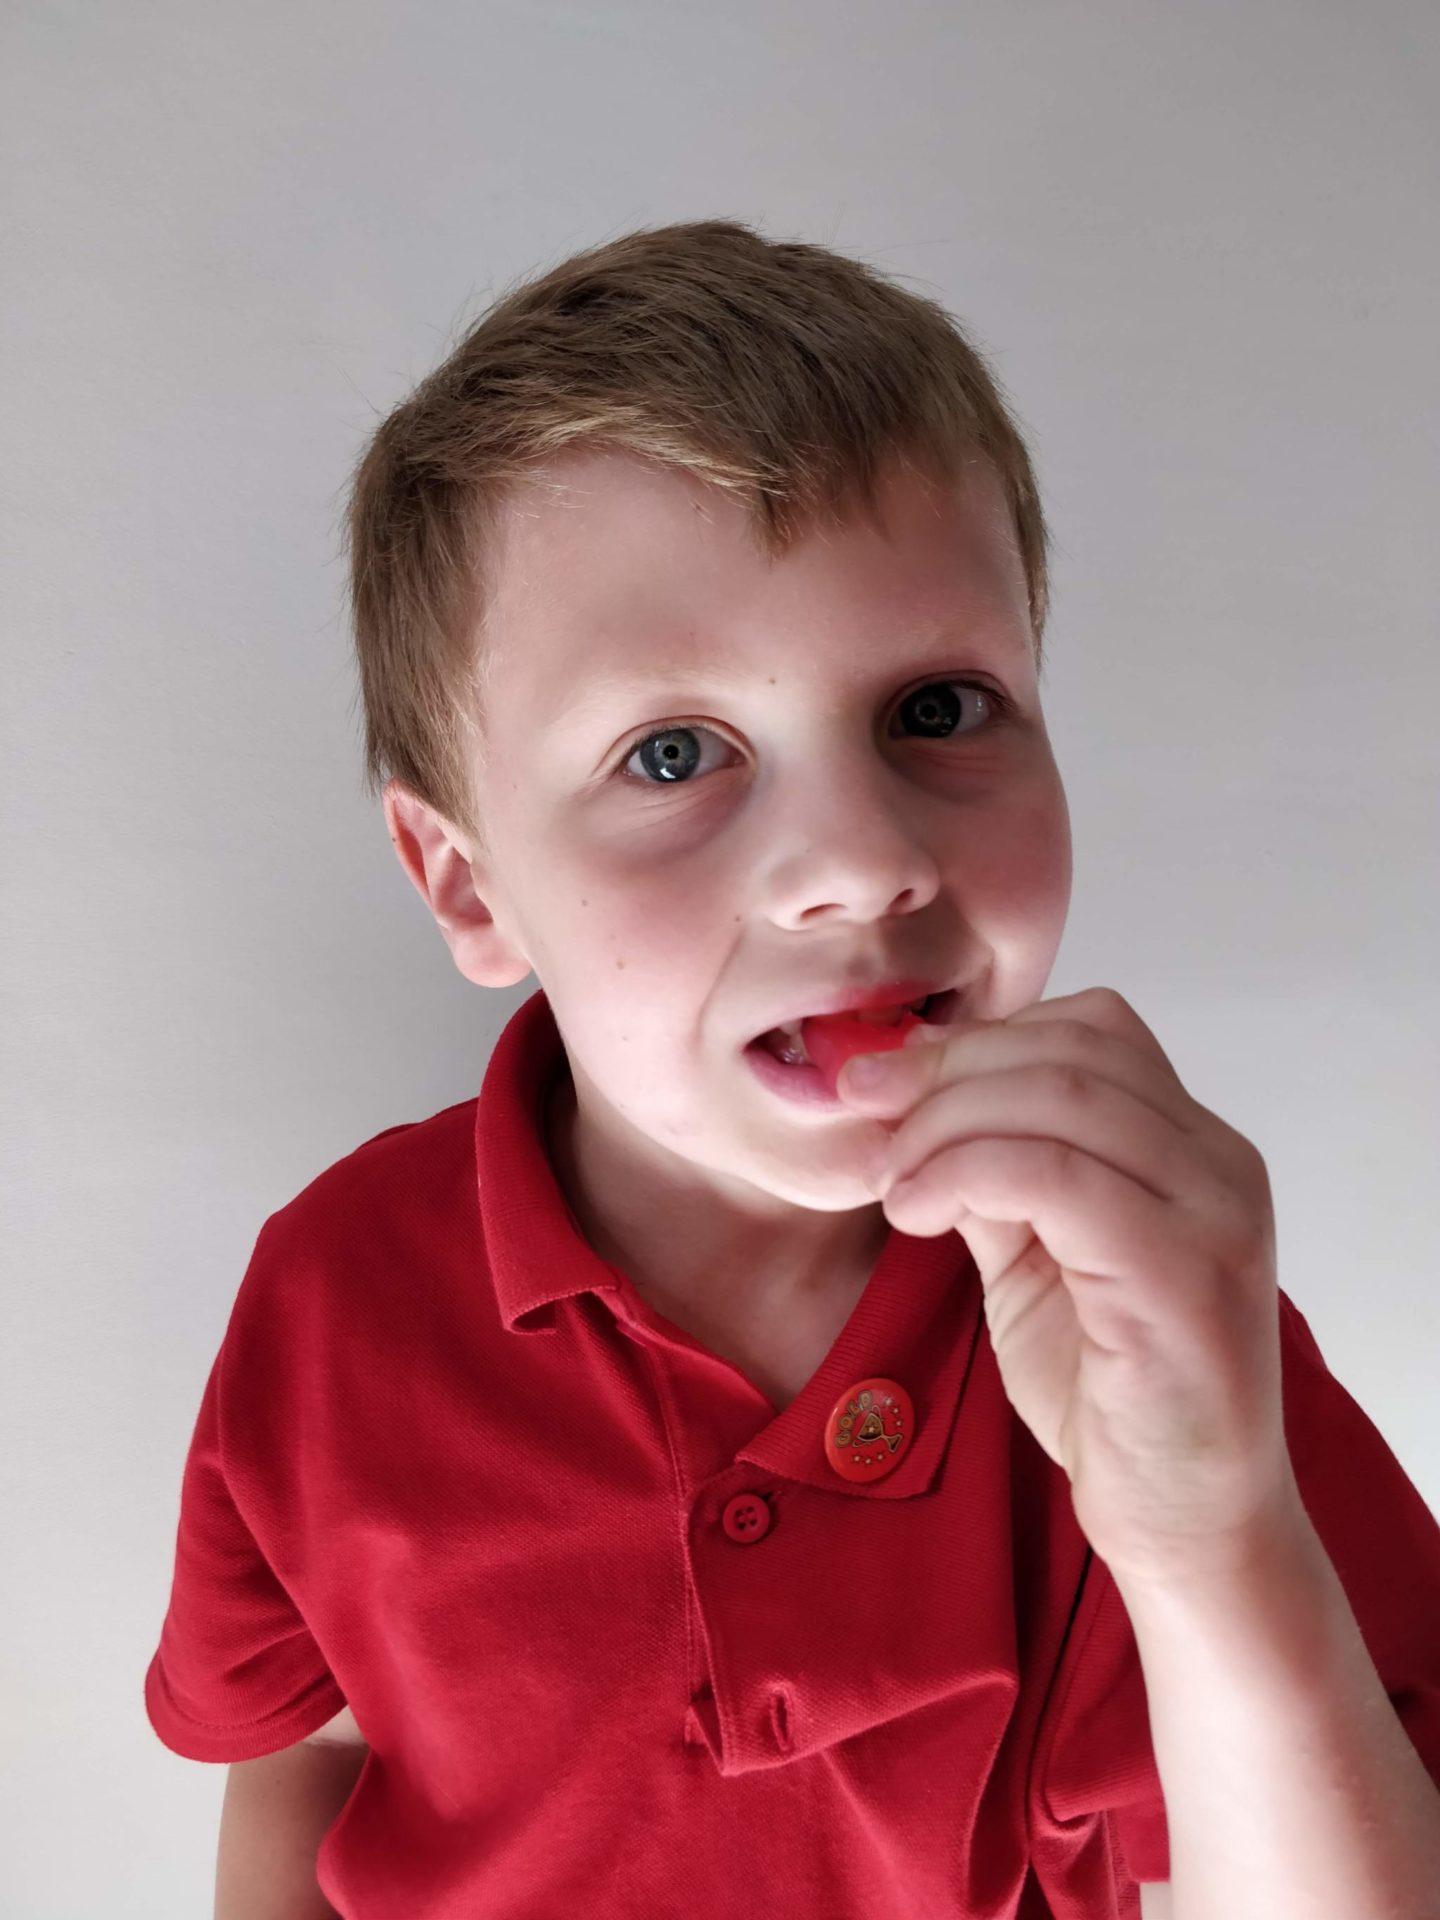 A 7 year old boy in a red top, eating a strawberry from Haribo's vegetarian range.